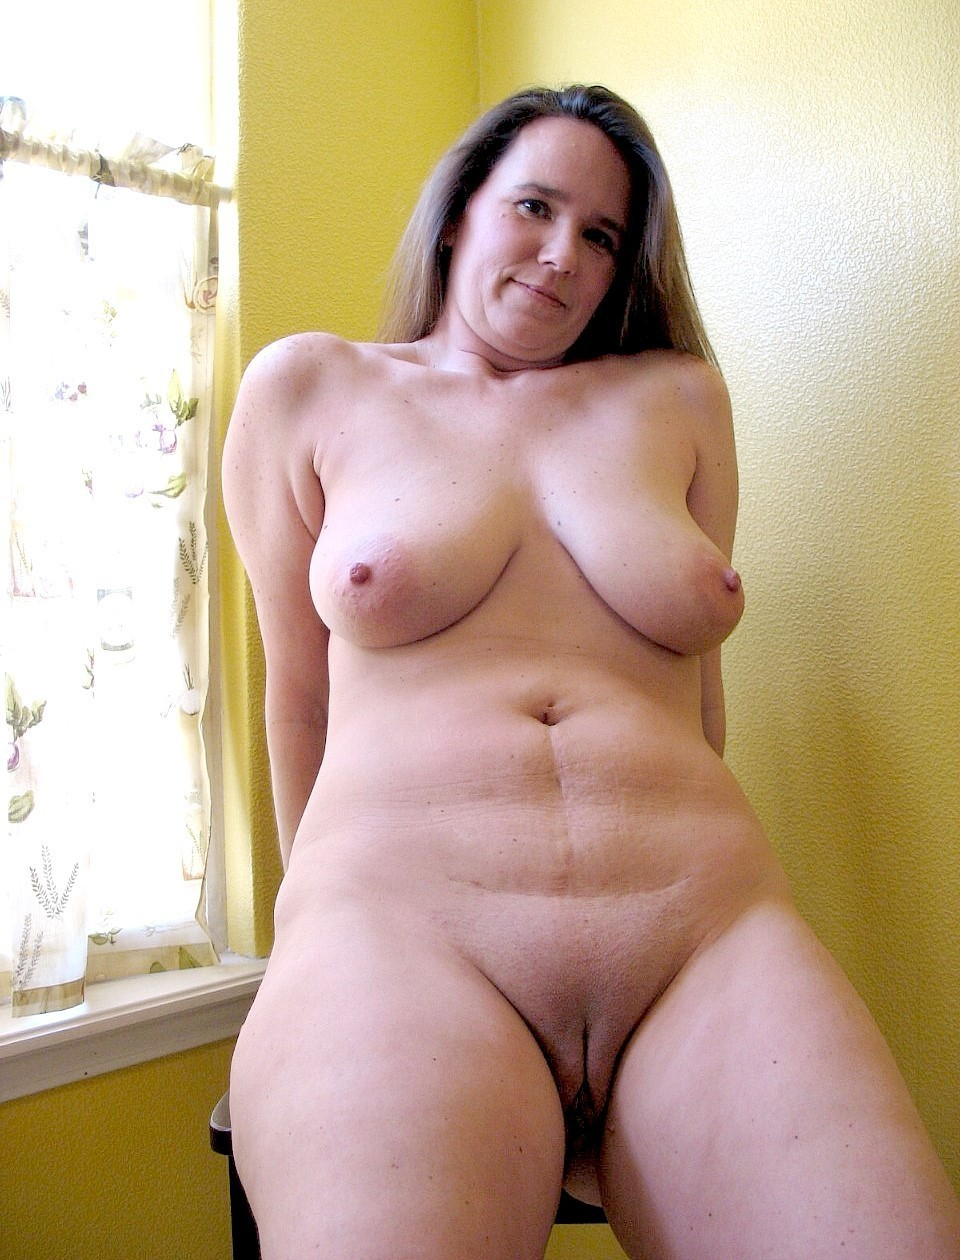 Older thick naked woman, regular girls i phone naked pictures